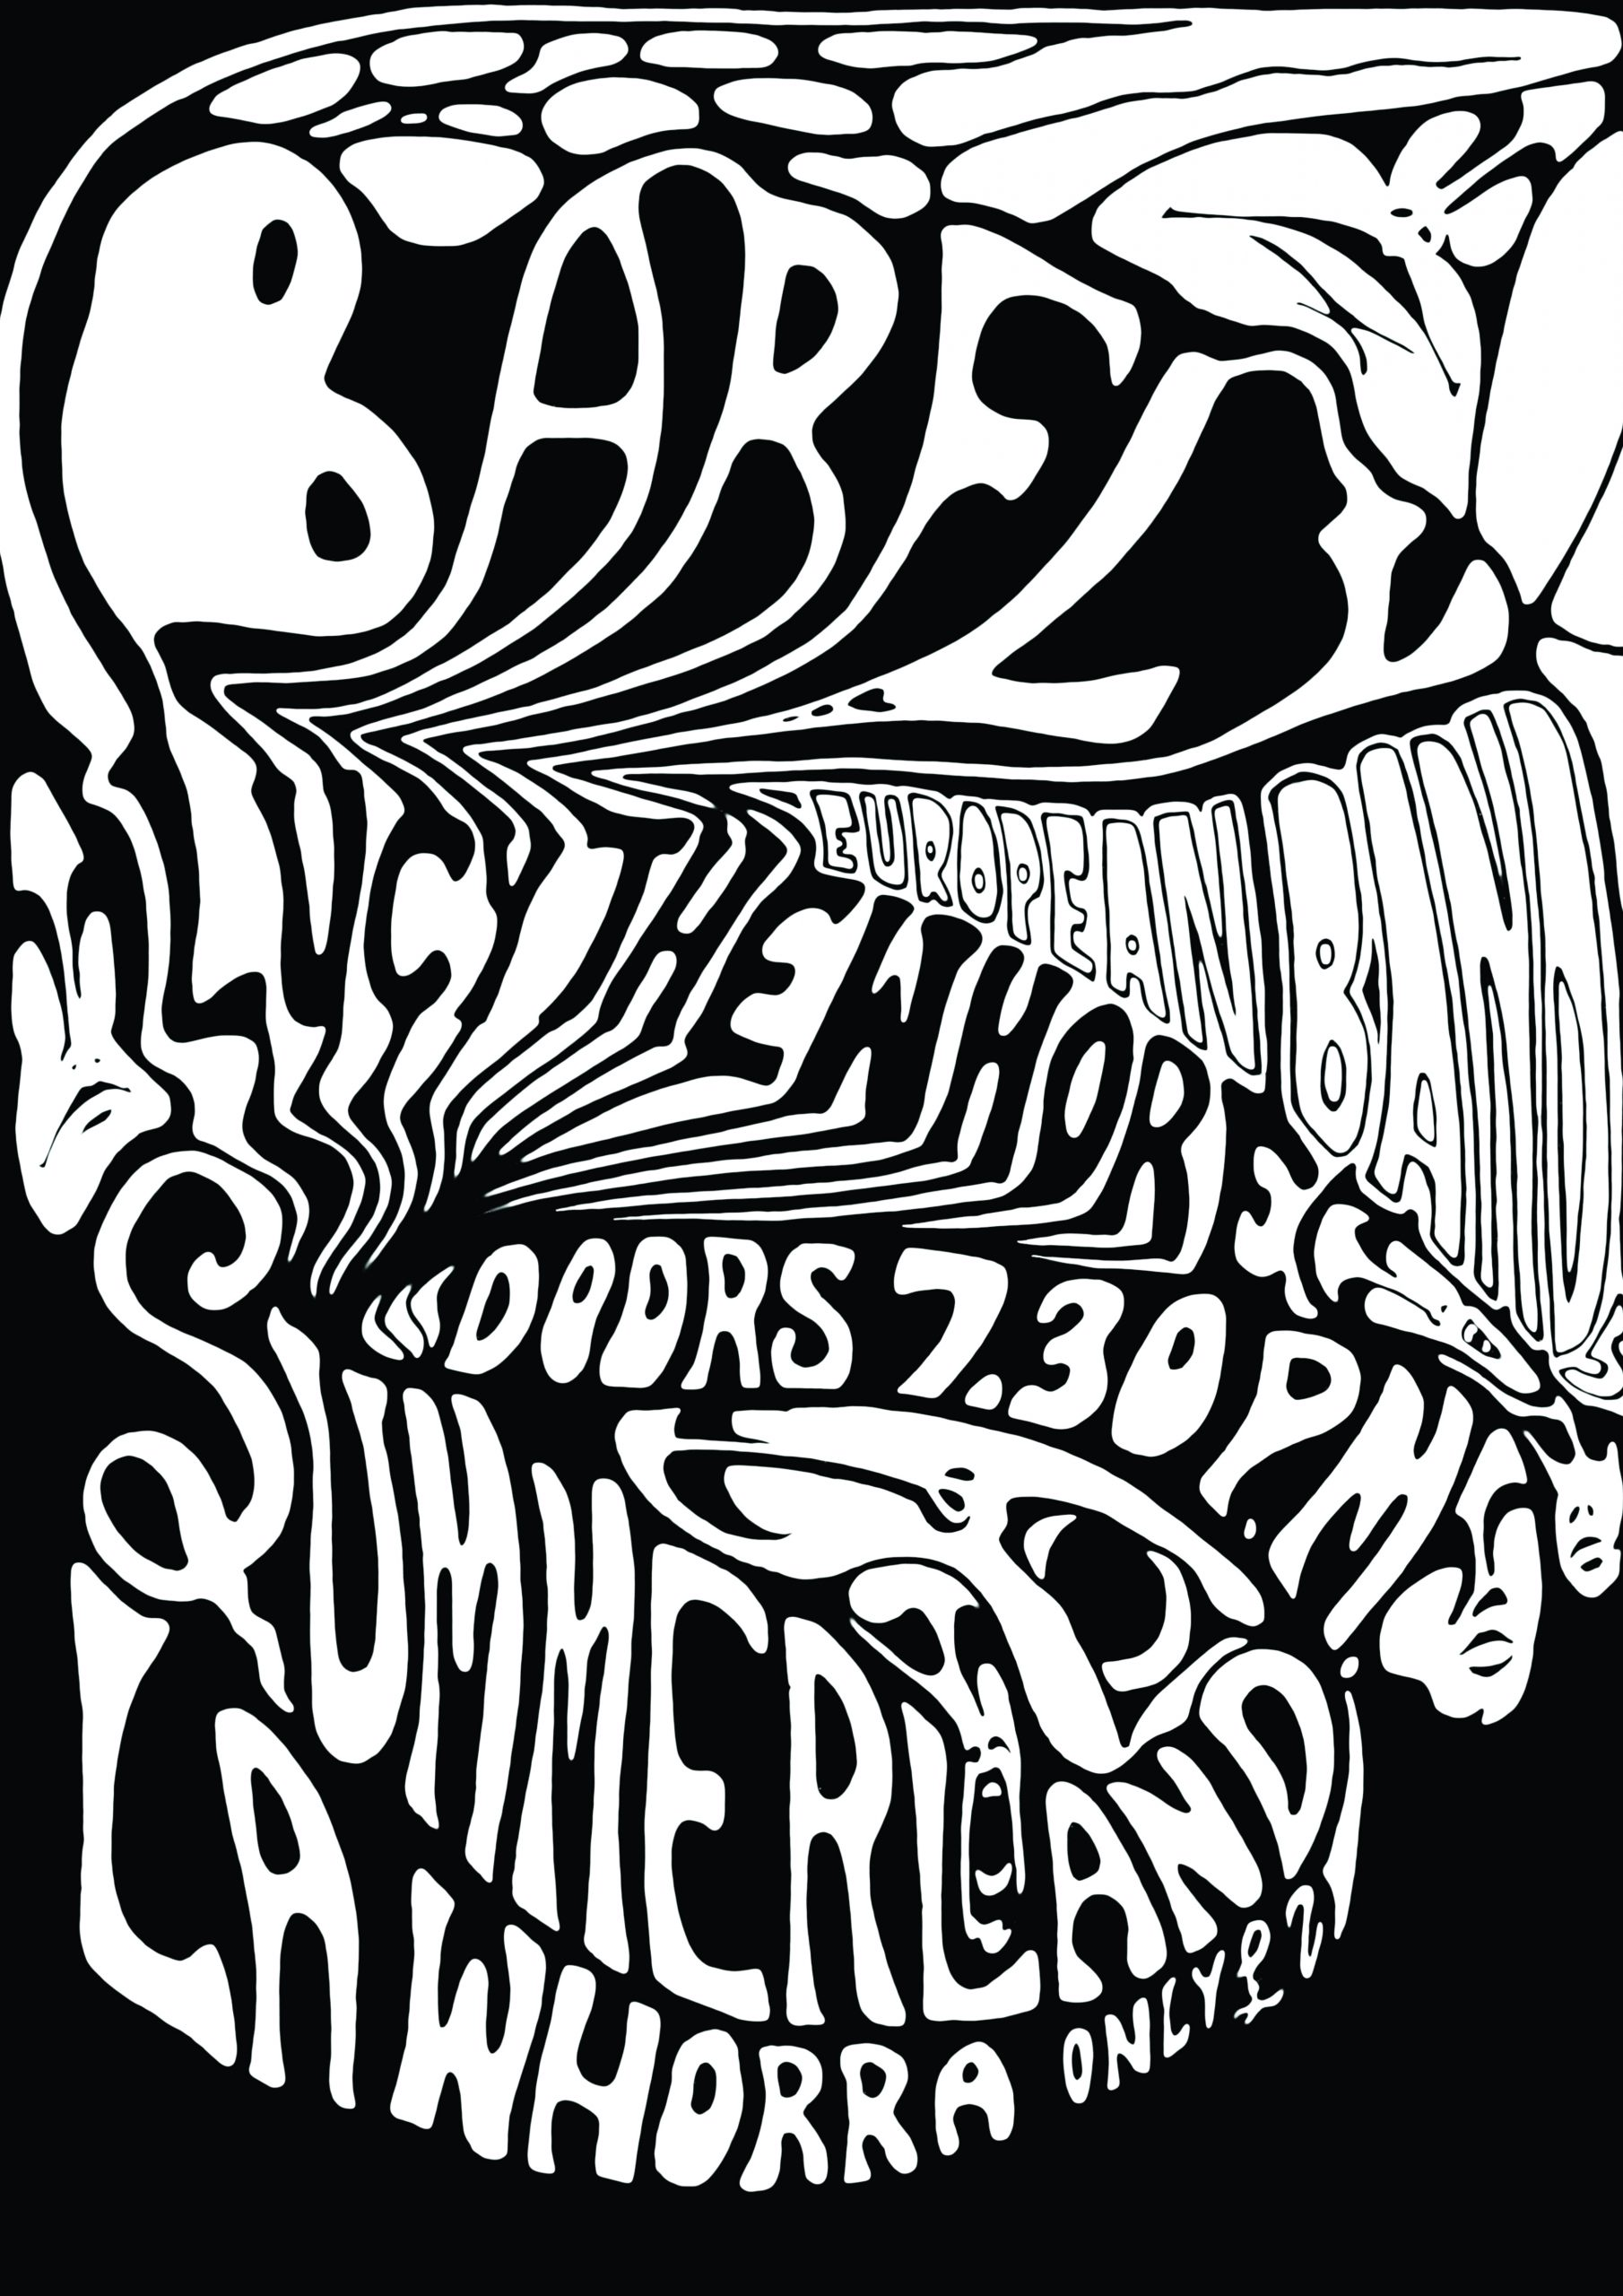 Barfly gig poster